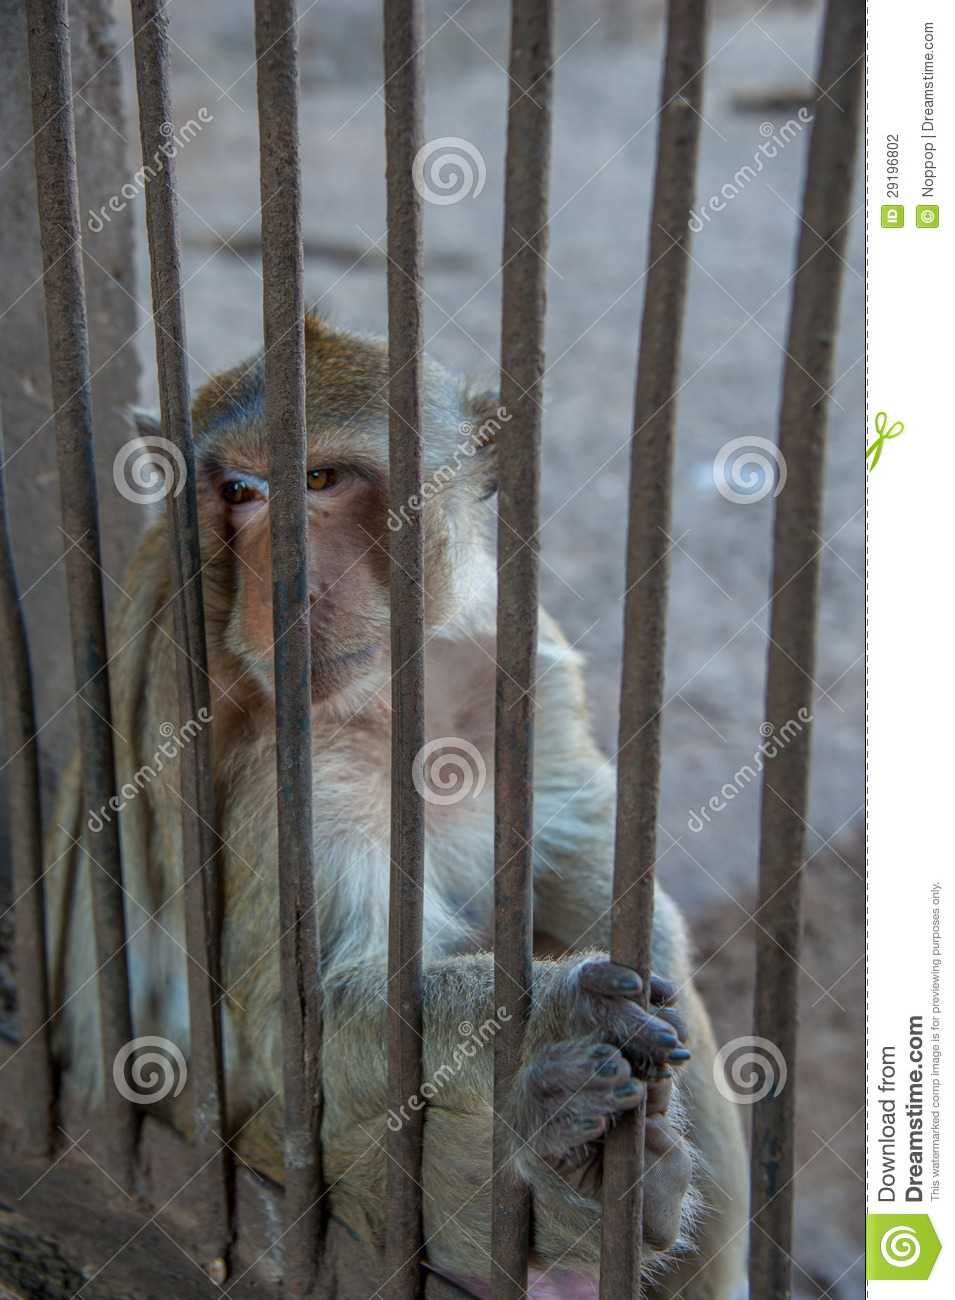 Monkey sit behind the cage